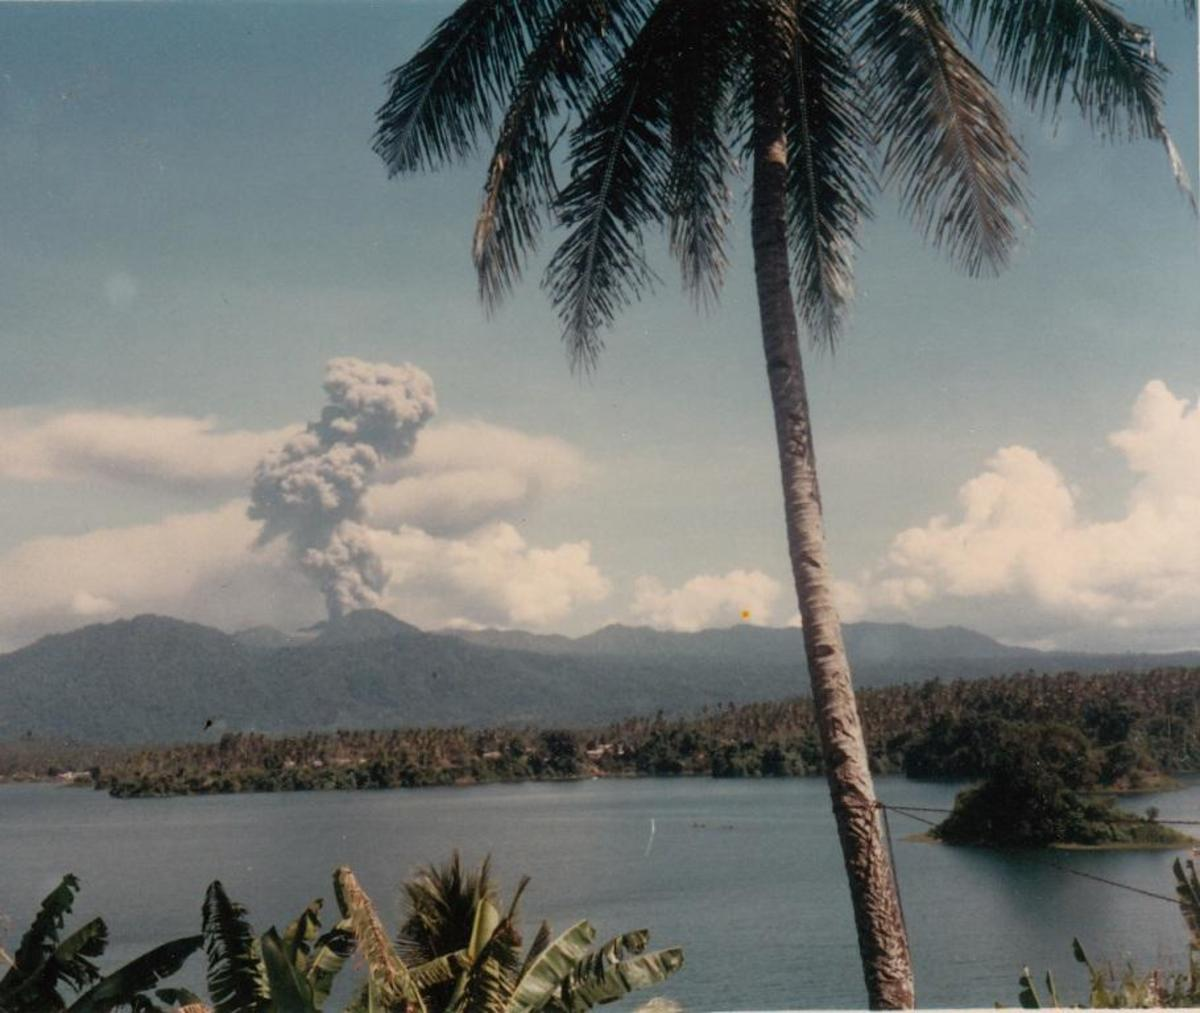 View of island in the lake and active volcano in the distance.